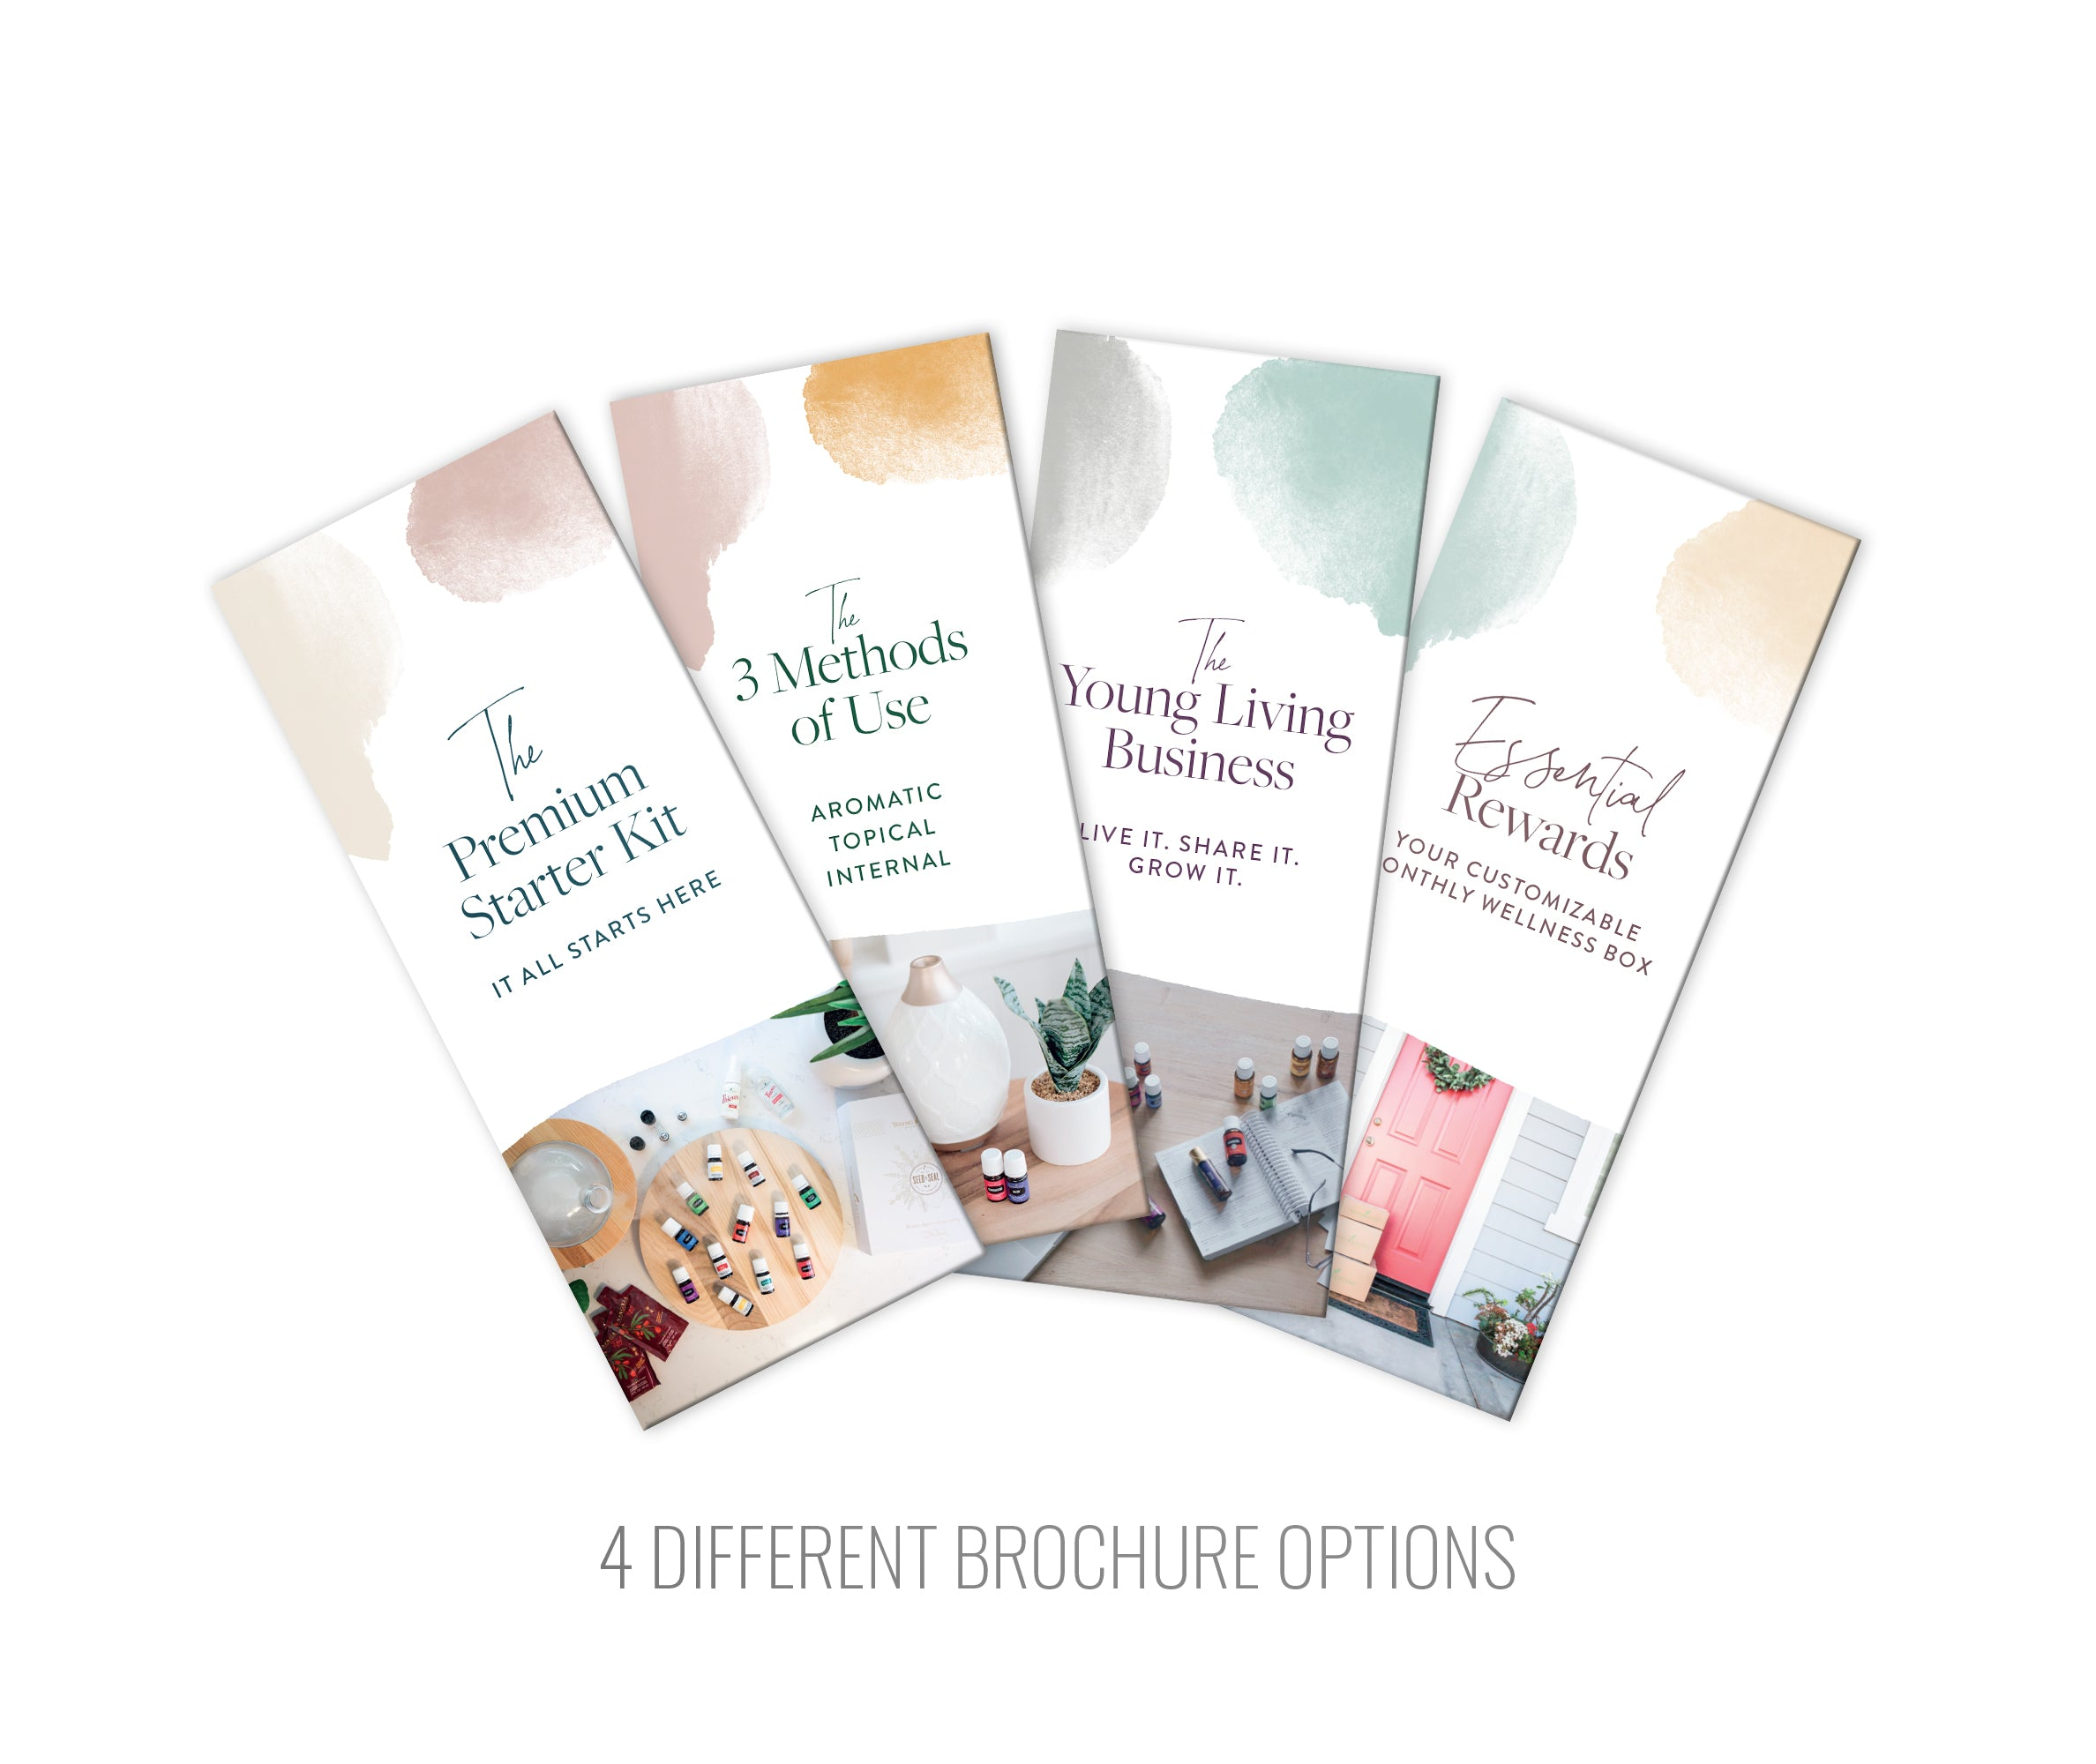 Brochure - 3 Methods of Use: Pack of 25